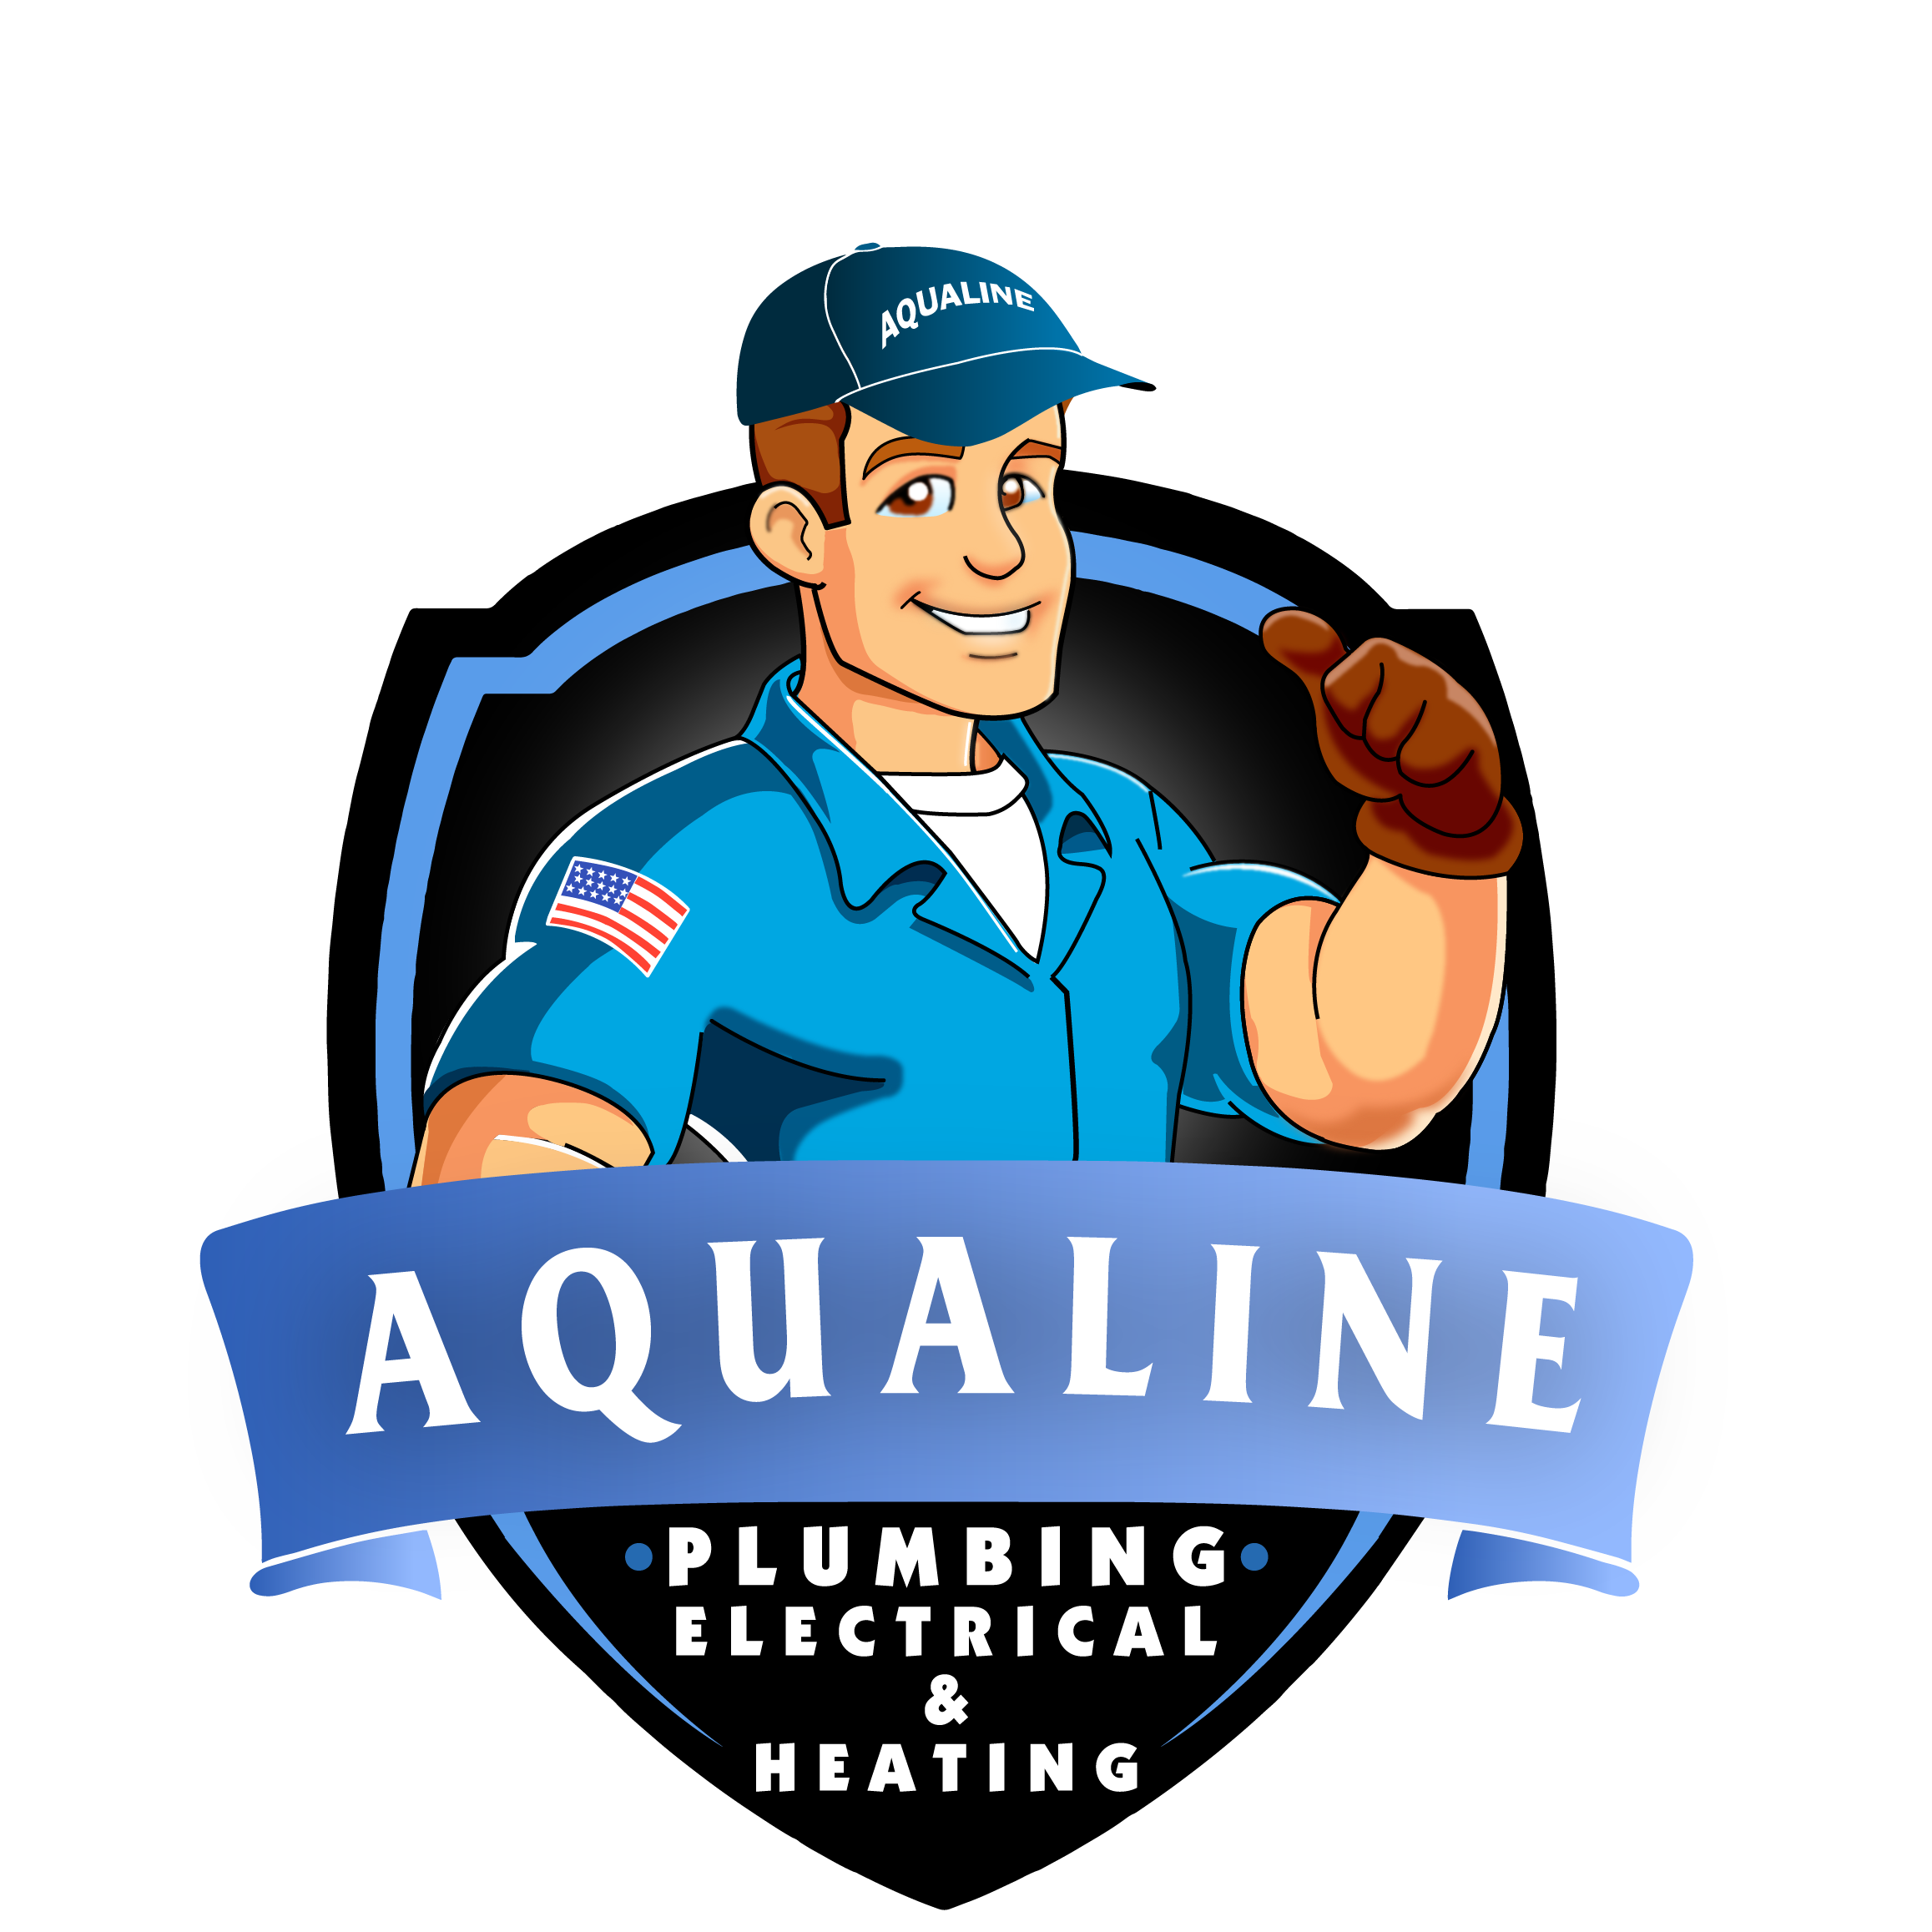 Aqualine Plumbing, Electrical & Heating